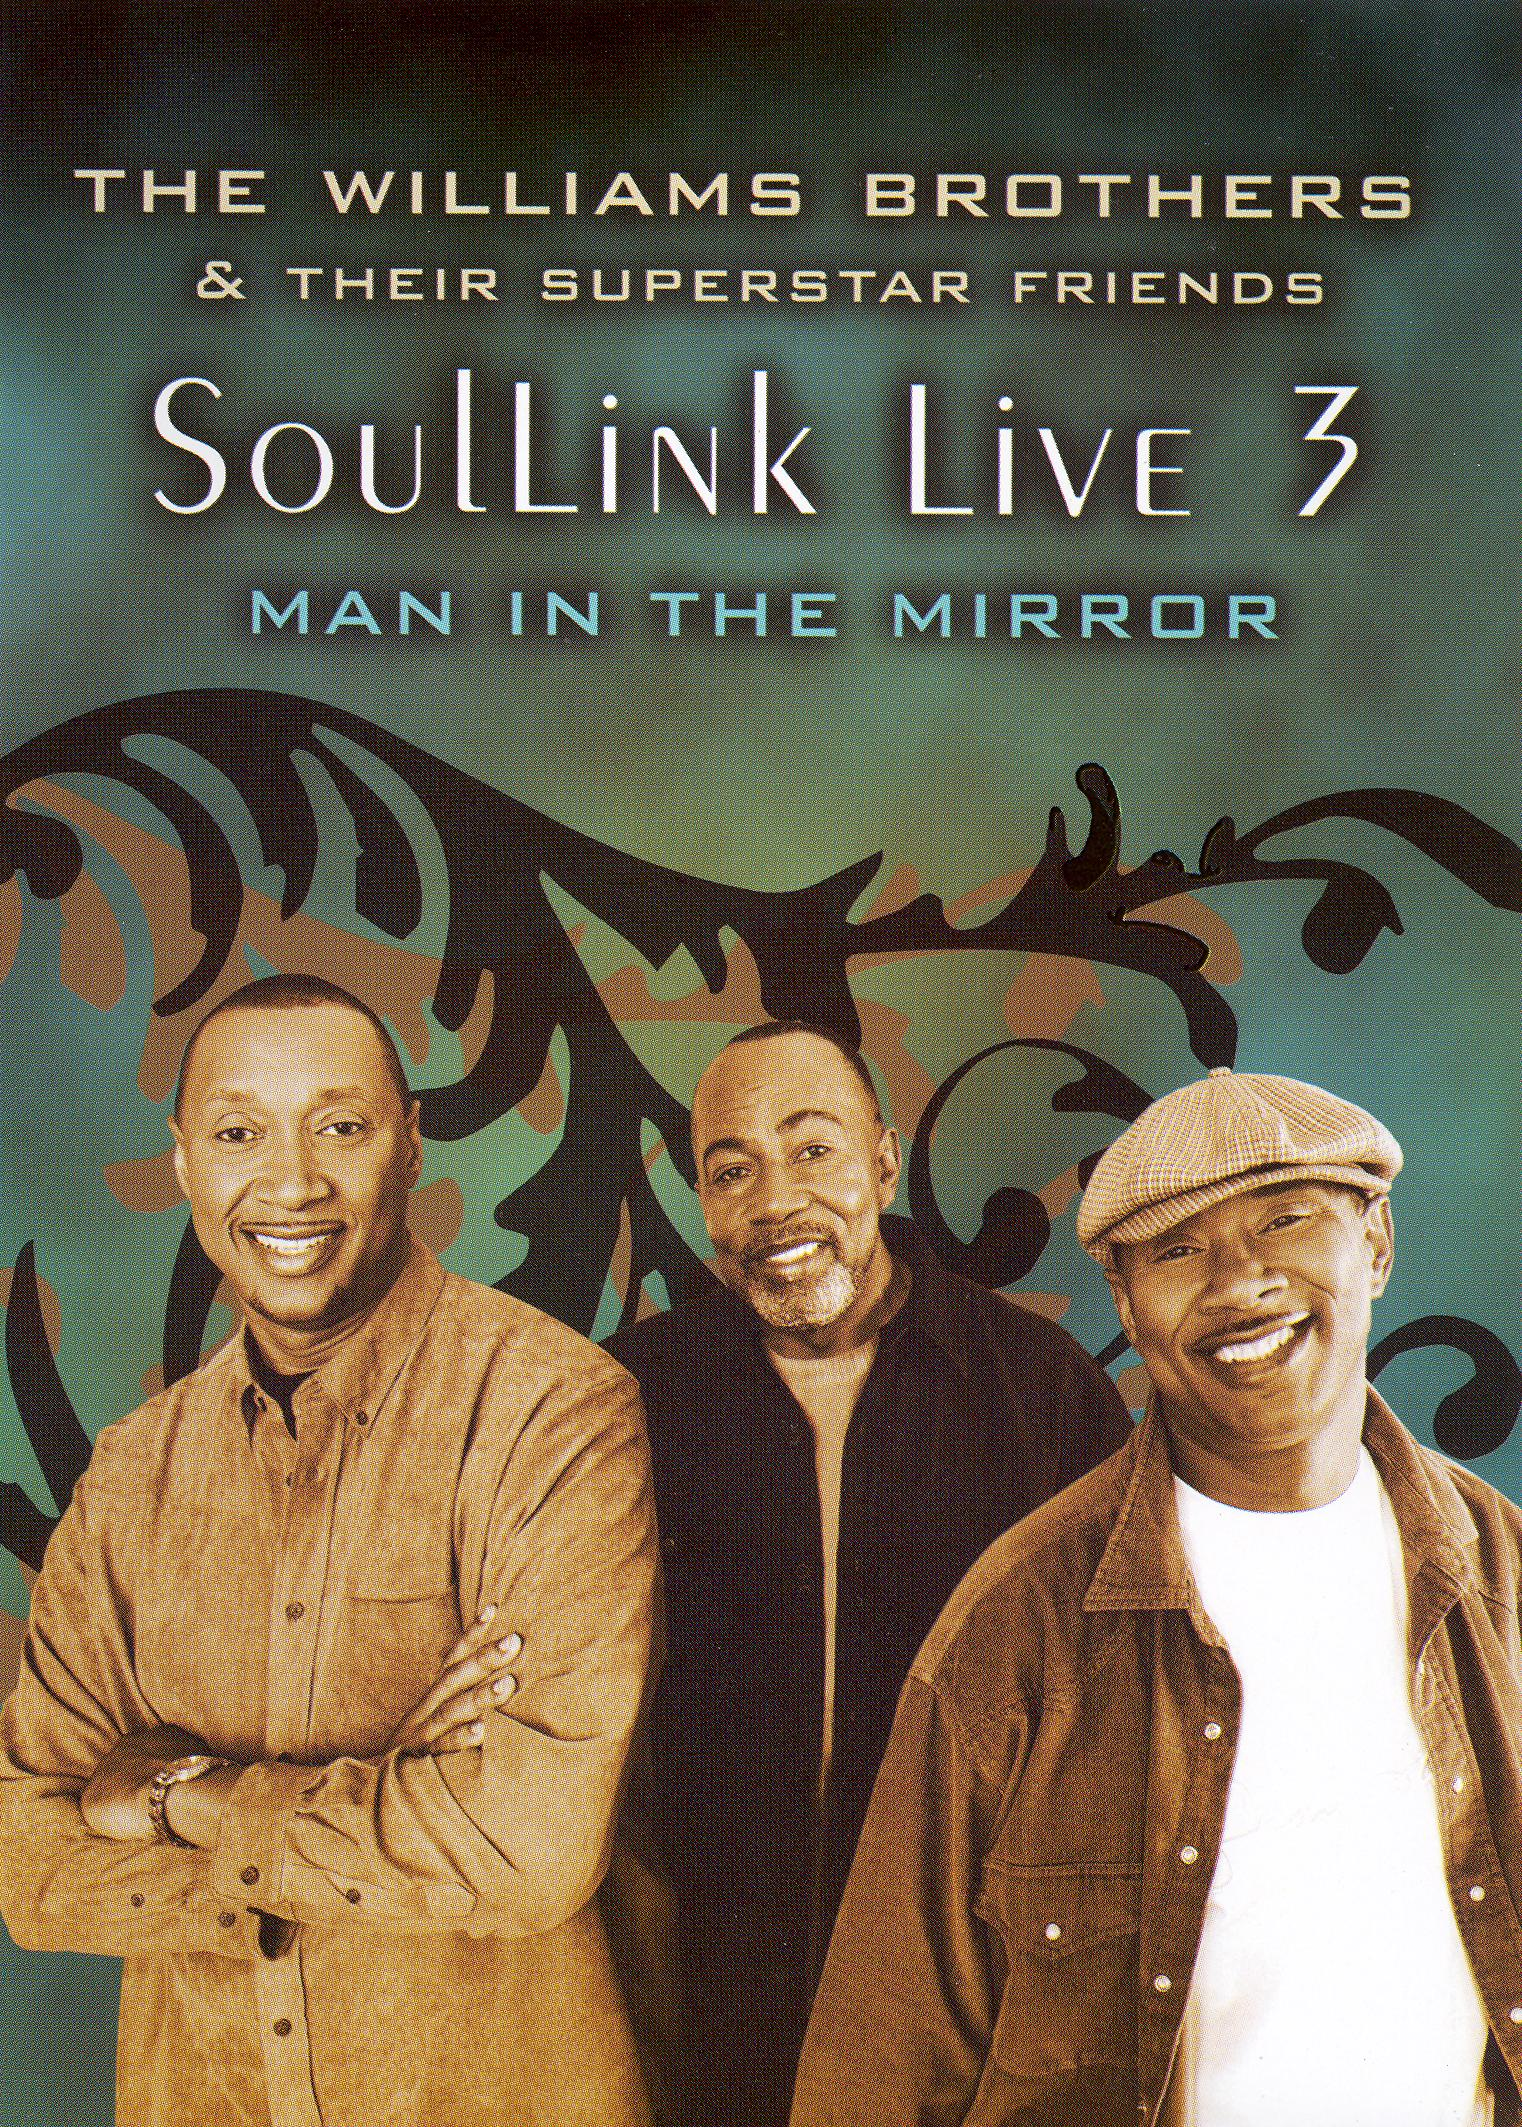 The Williams Brothers and Their Friends: Soullink Live, Vol. 3